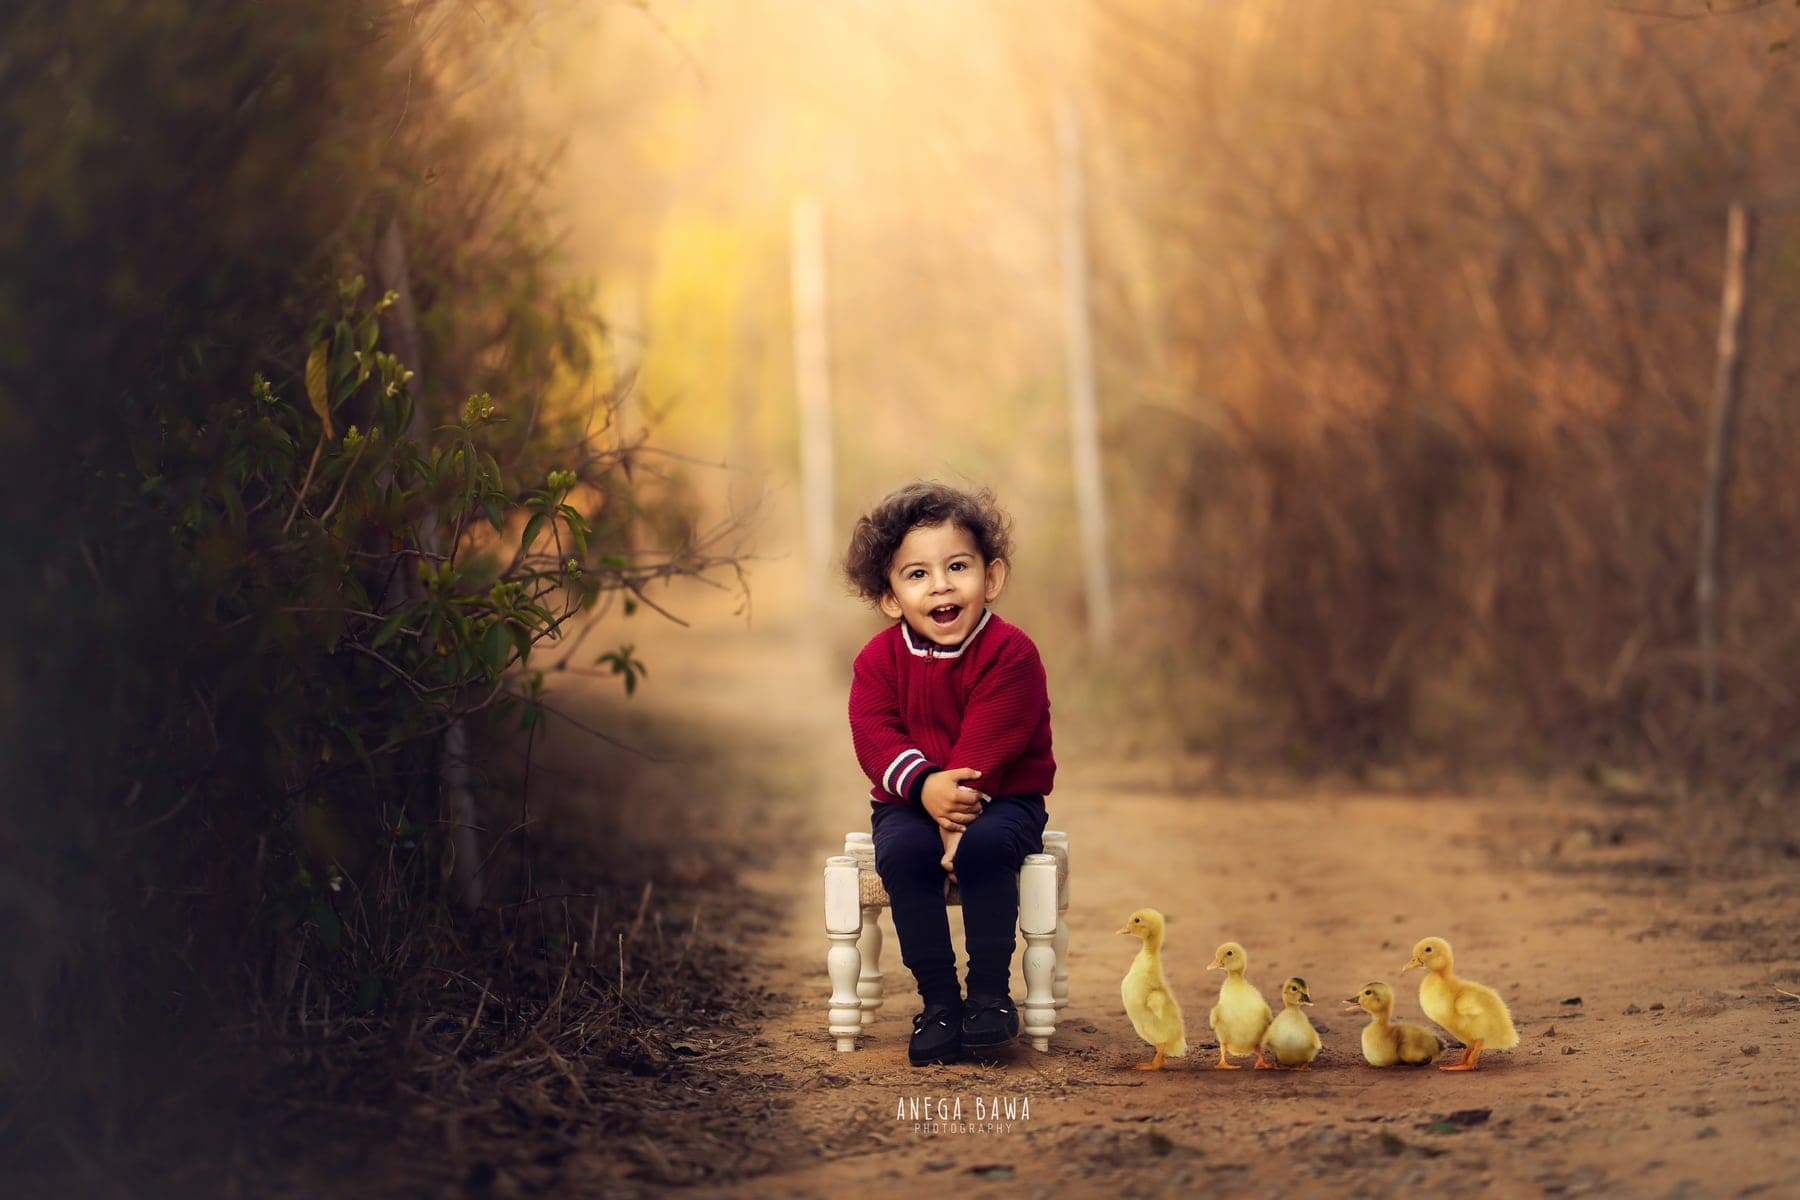 32401-natural-background-brown-yellow-ducks-1-2-3-years-toddler-sitter-outdoor-photo-shoot-delhi-anega-bawa-photography-baby-gurgaon